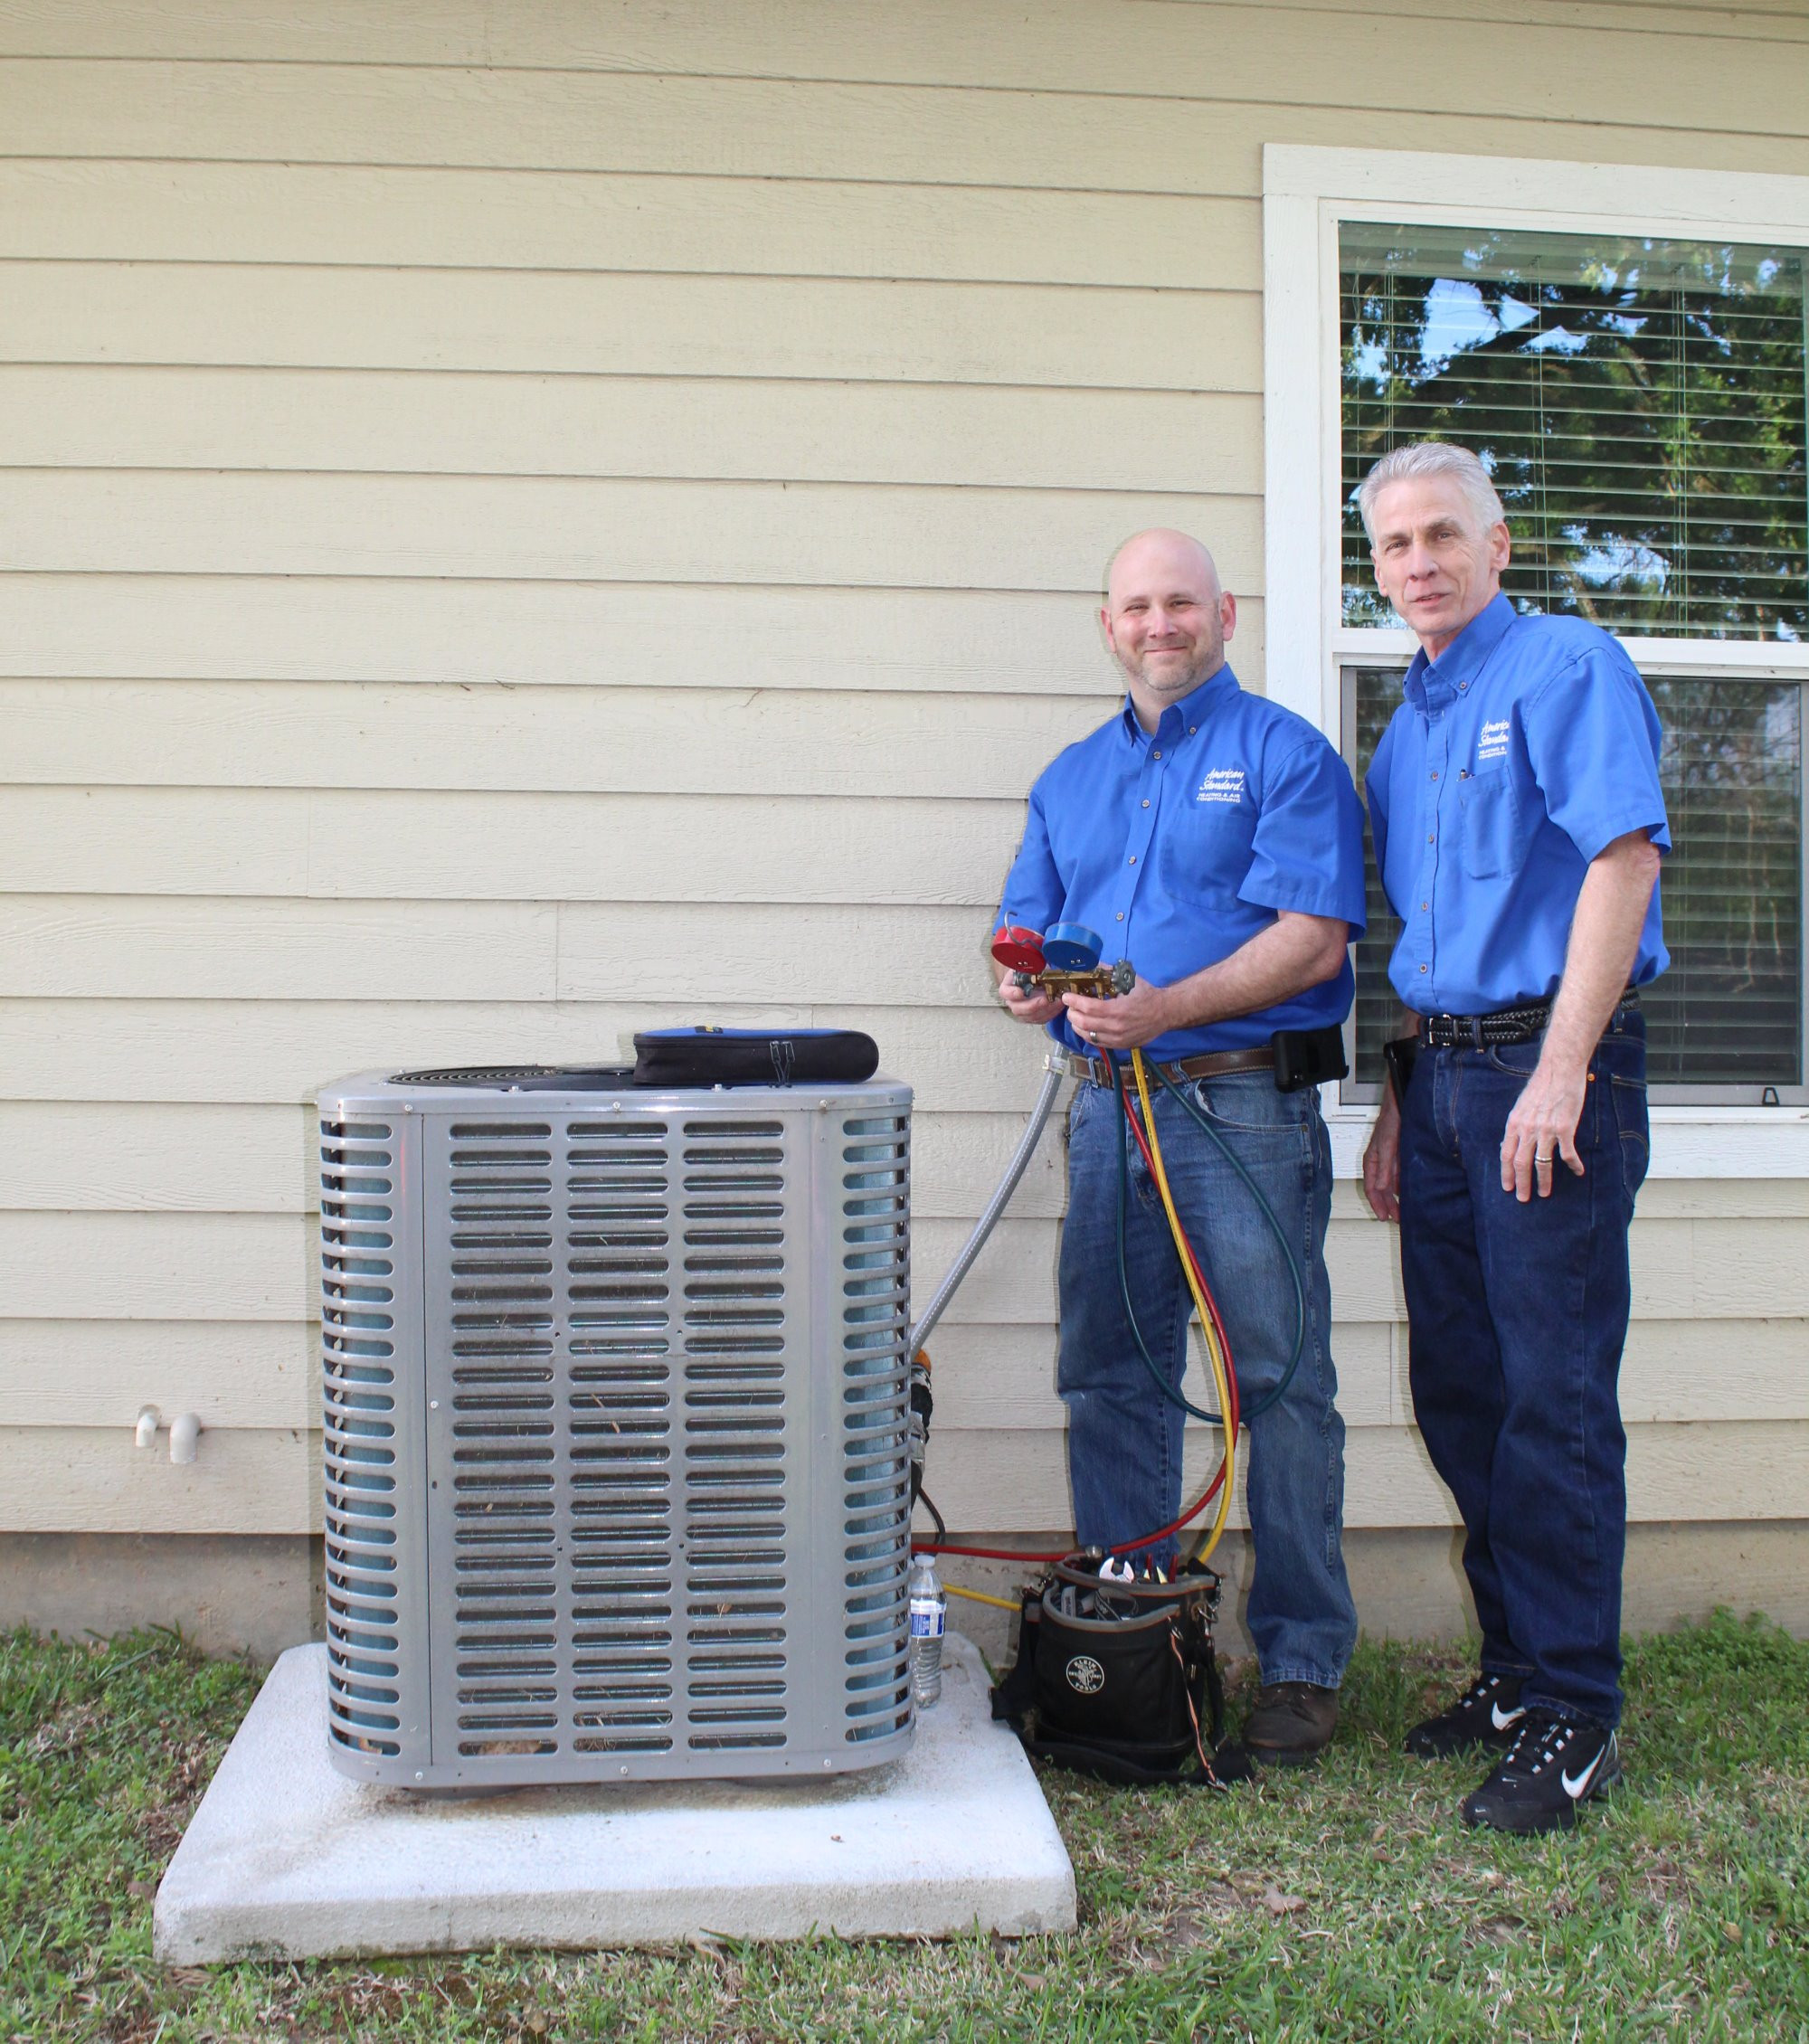 Home Air Conditioning Check Up / Service